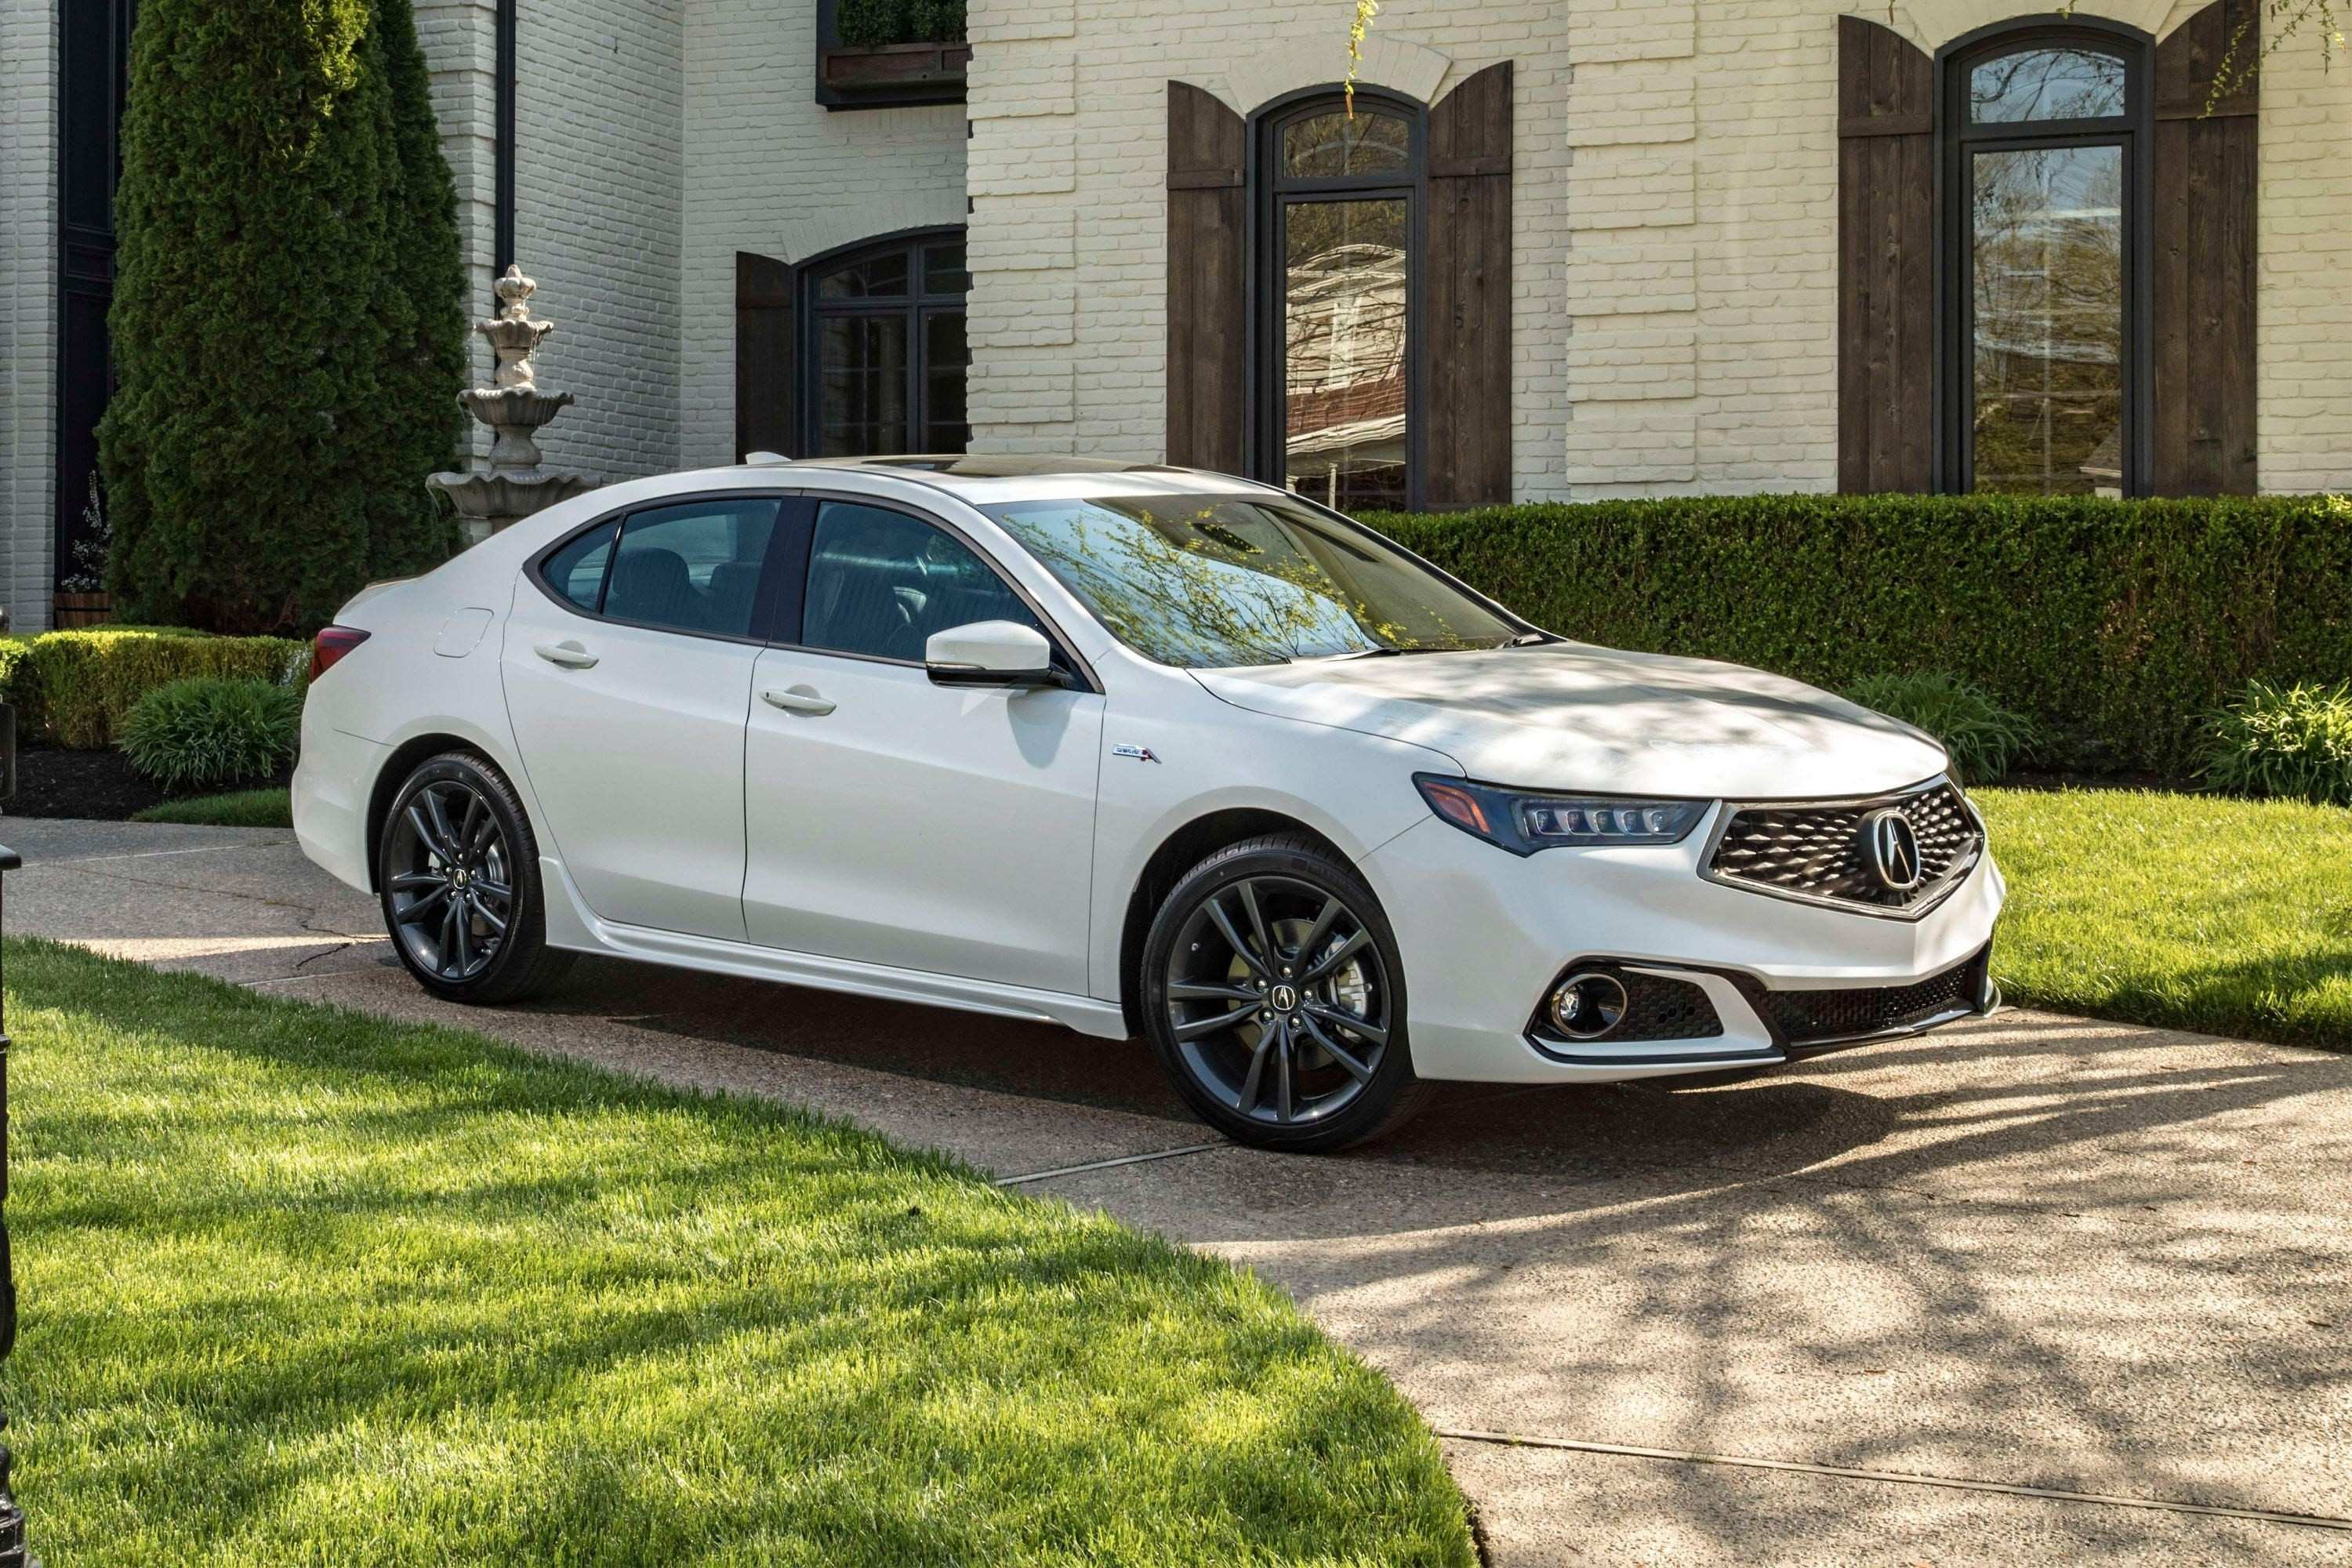 53 New 2019 Acura Tlx Type S Overview